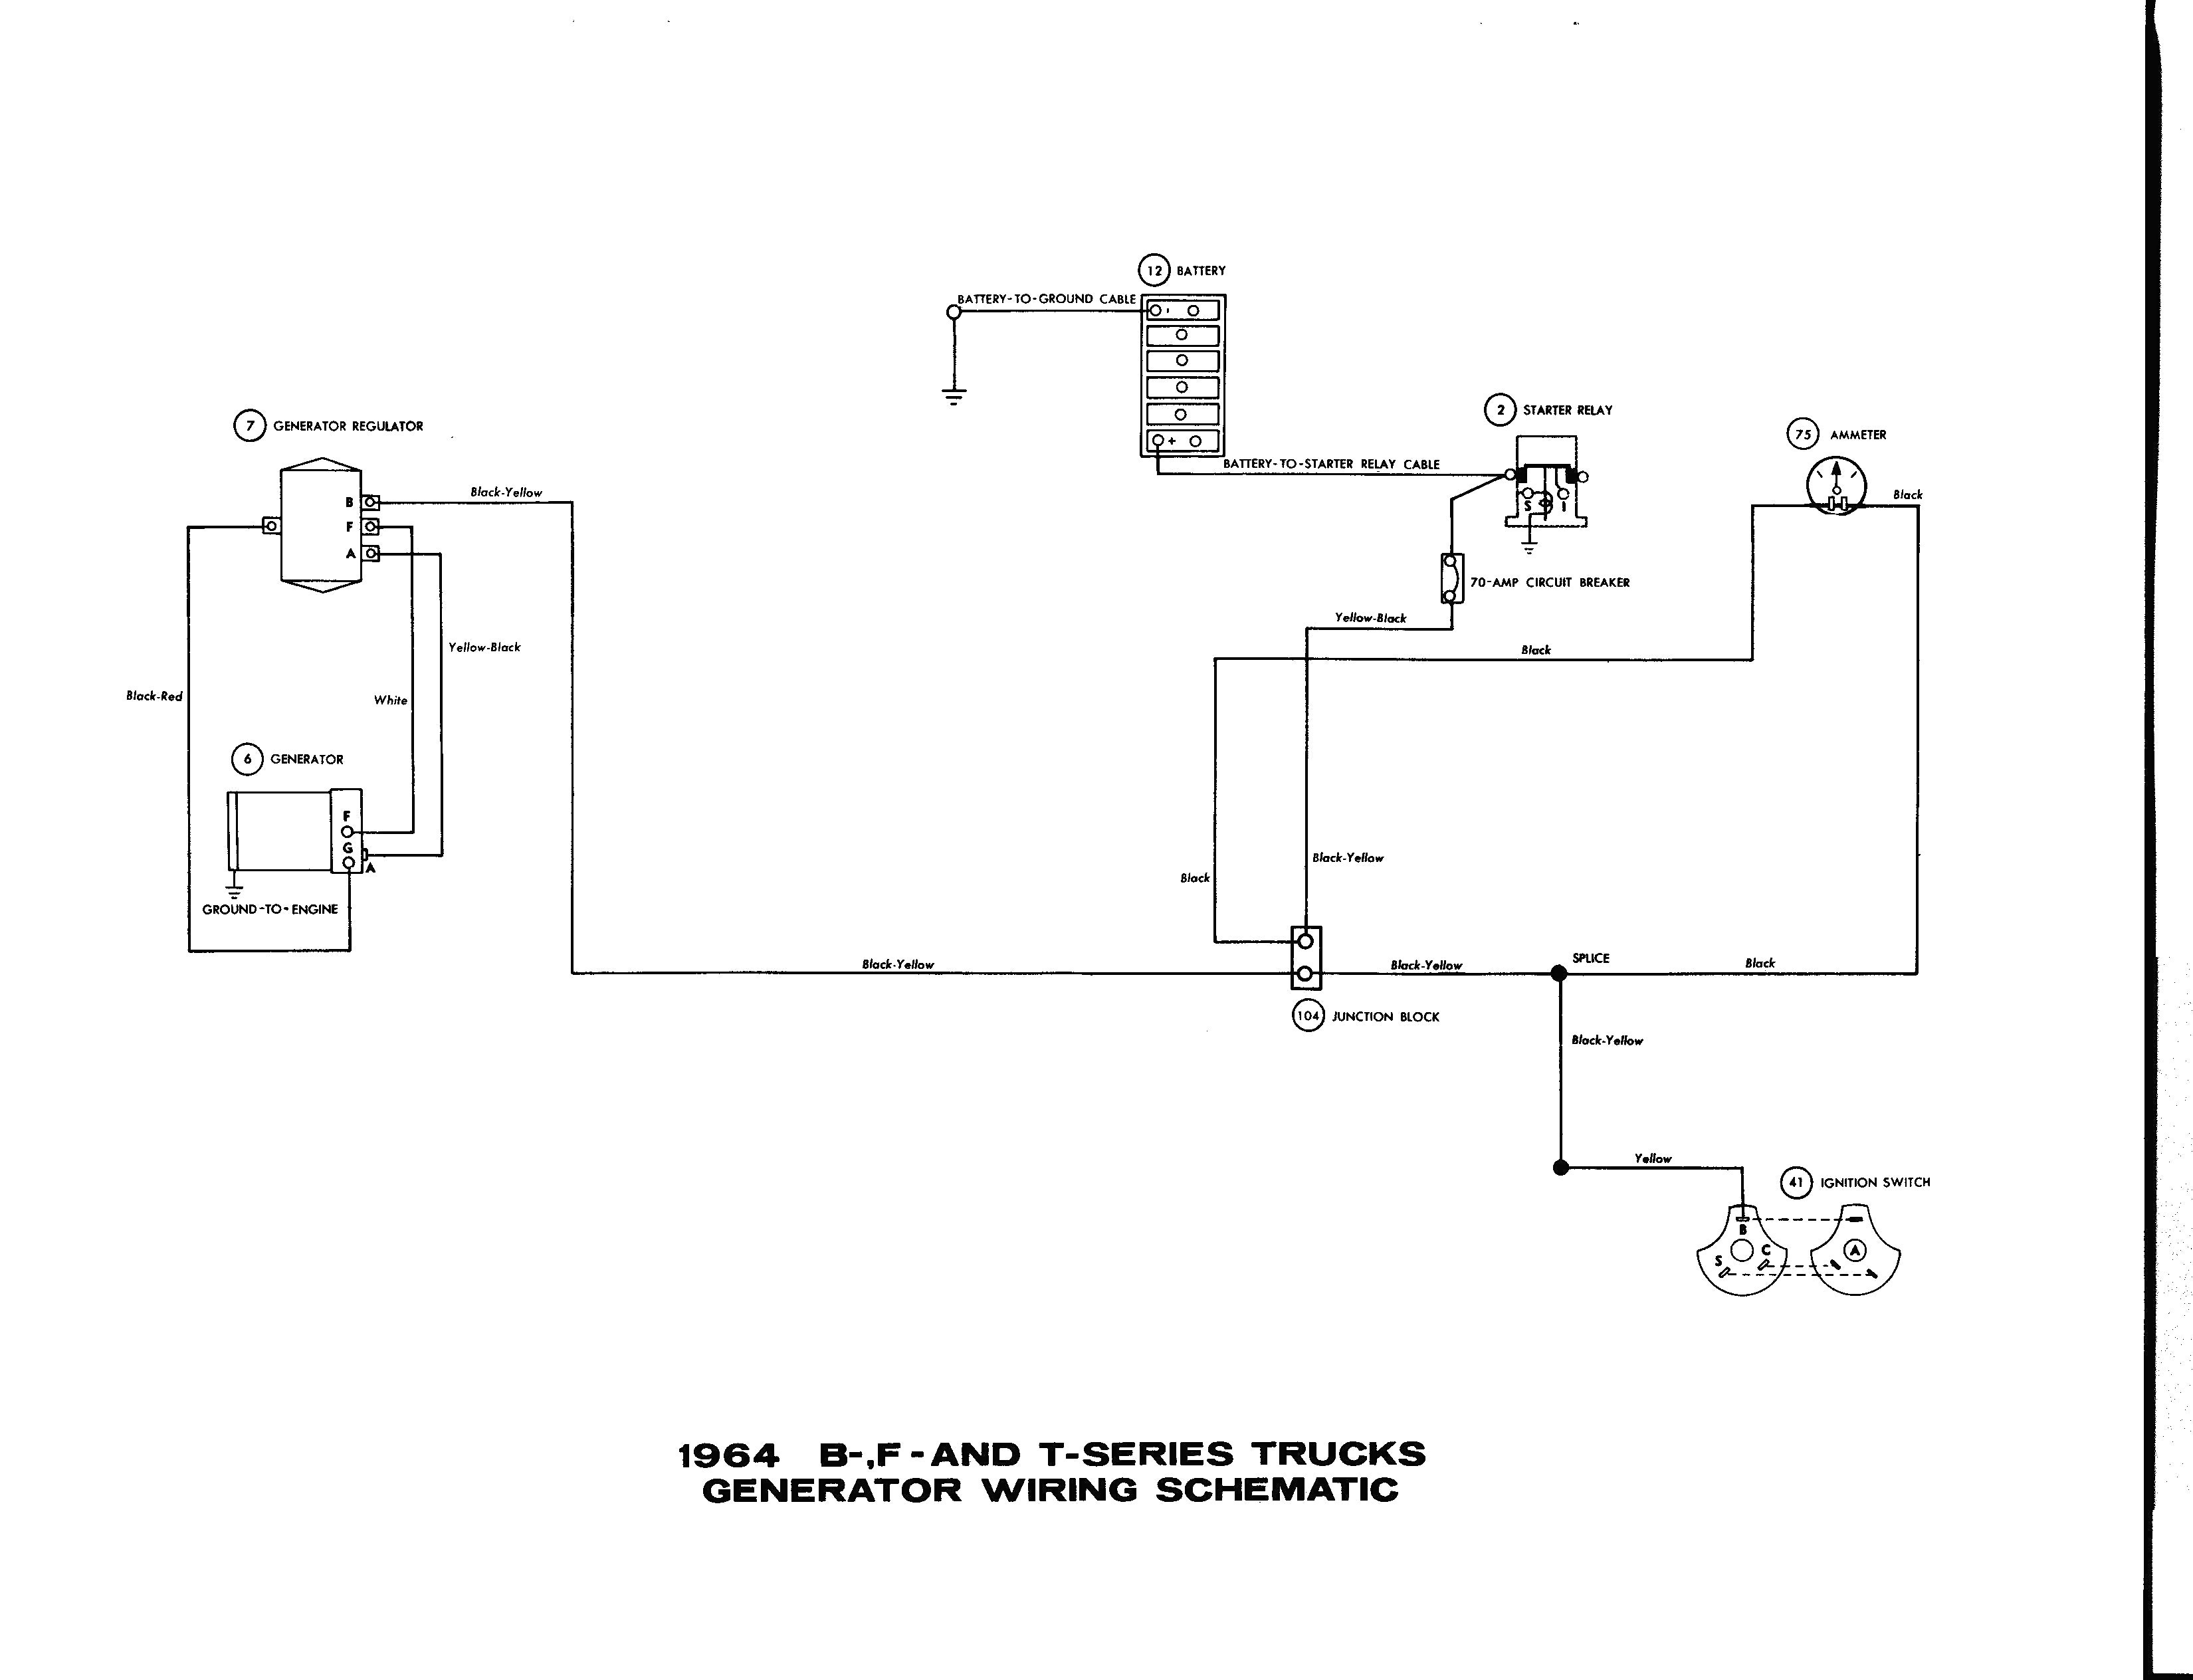 Alternator wiring diagram ford transit wiring solutions alternator wiring diagram ford transit solutions asfbconference2016 Gallery